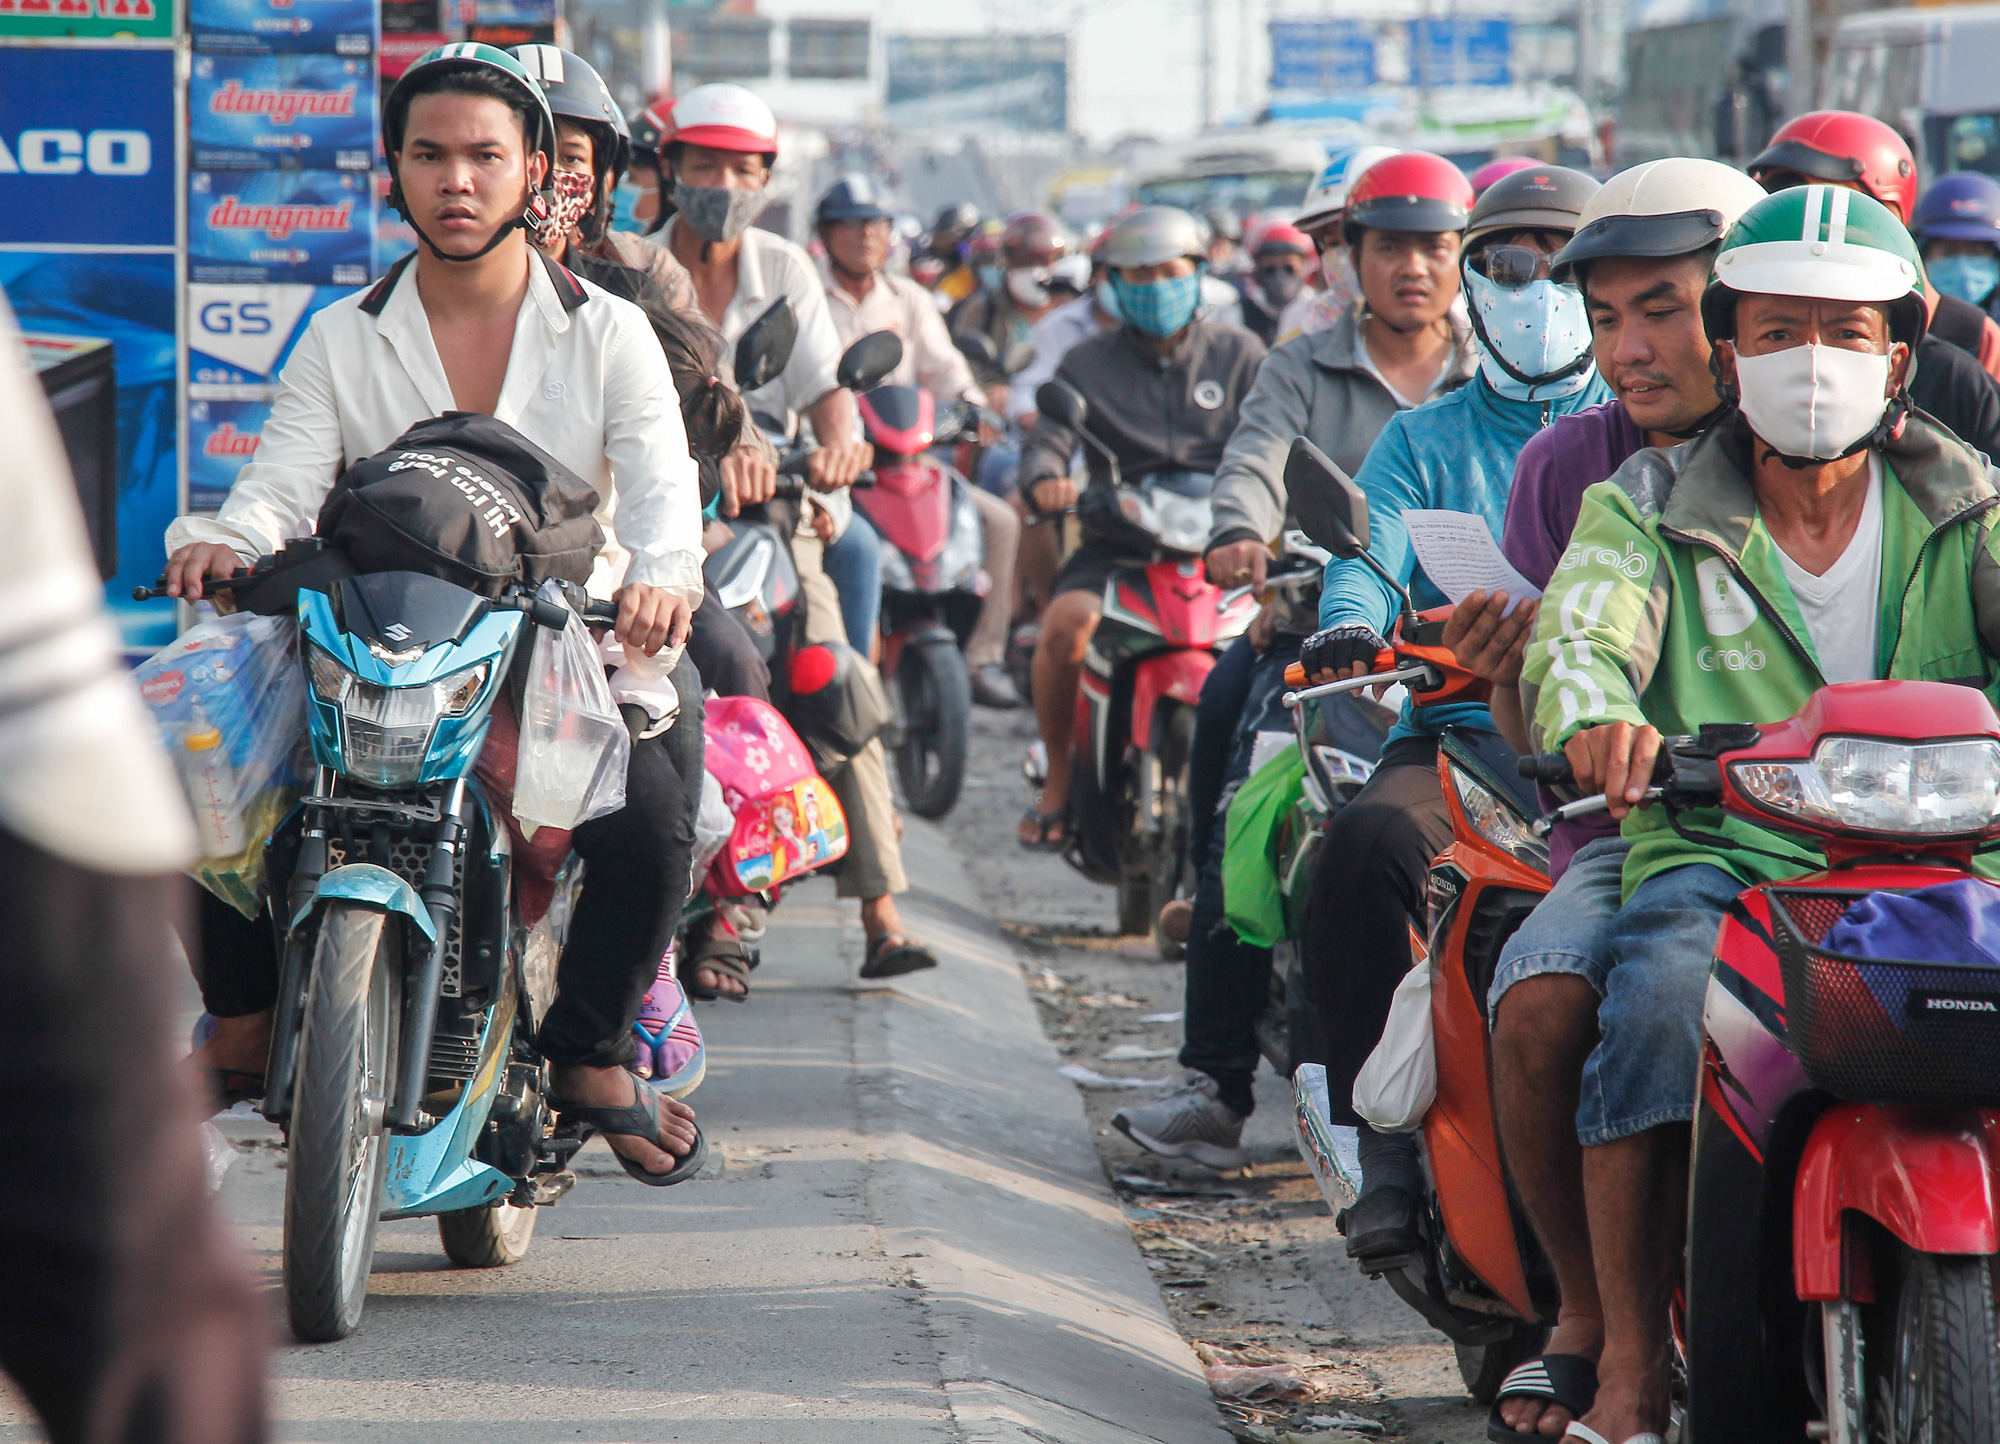 Motorcyclists travel on the sidewalk amid a traffic jam on National Highway 1 leading to Ho Chi Minh City, May 3, 2020. Photo: Chau Tuan / Tuoi Tre